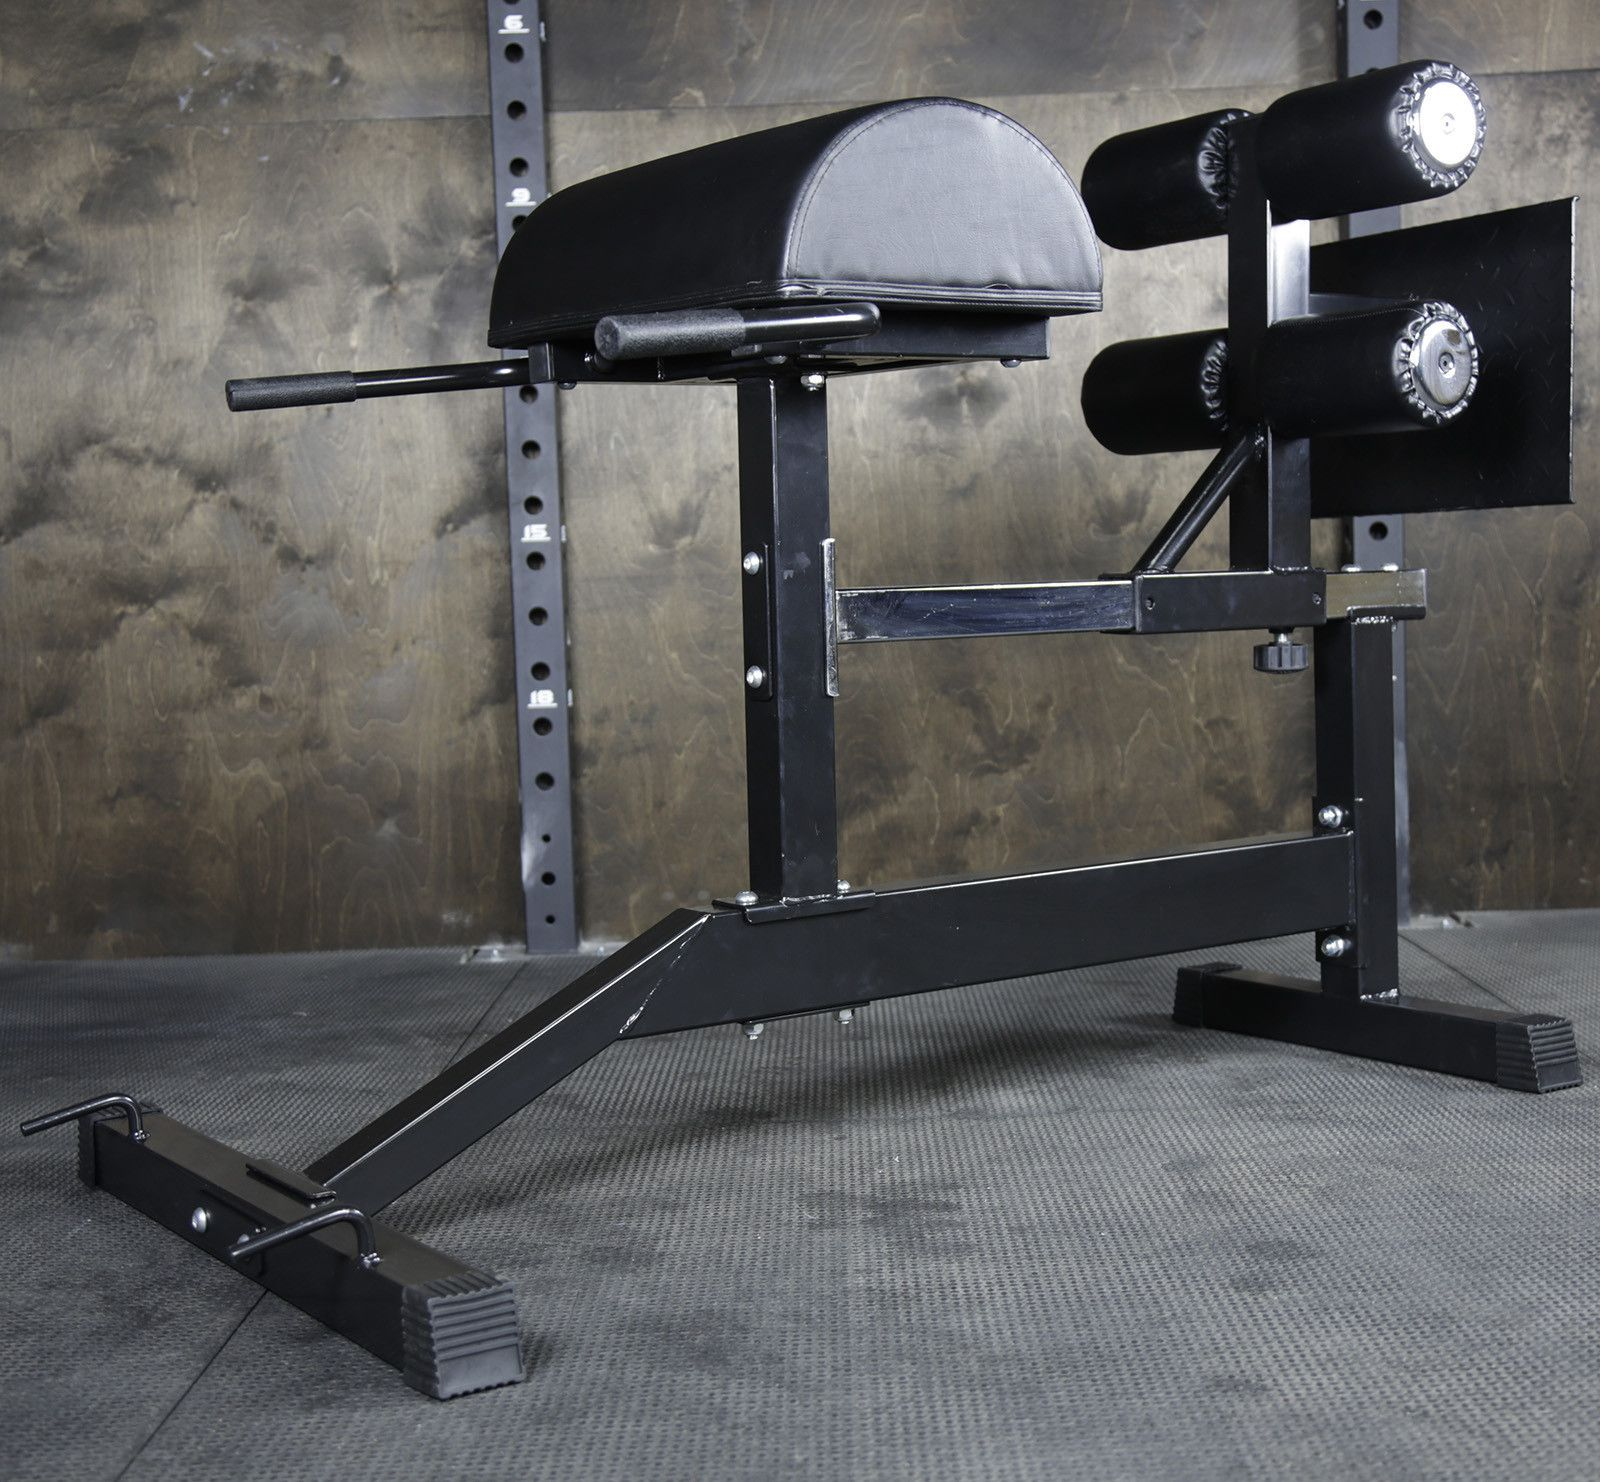 Glute Ham Developer Ghd Machine By Onefitwonder